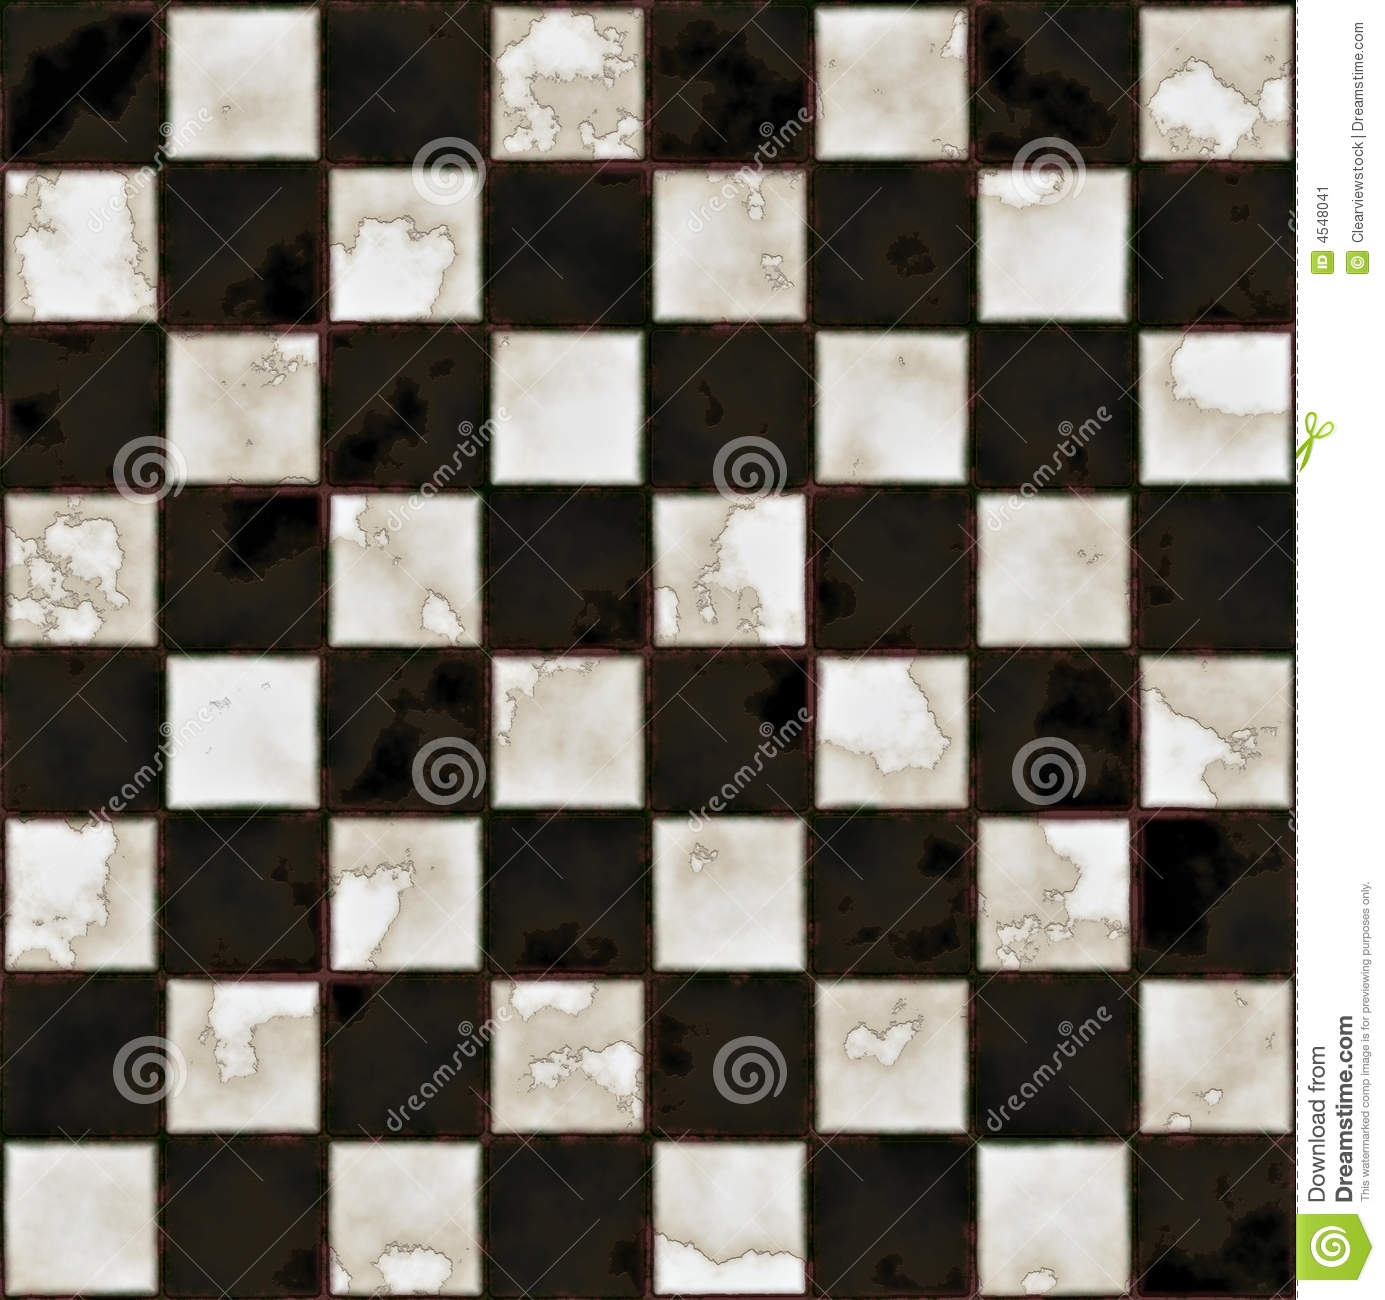 Black And White Marble Floors Black And White Marble Floor Stock Vector Illustration Of Stone